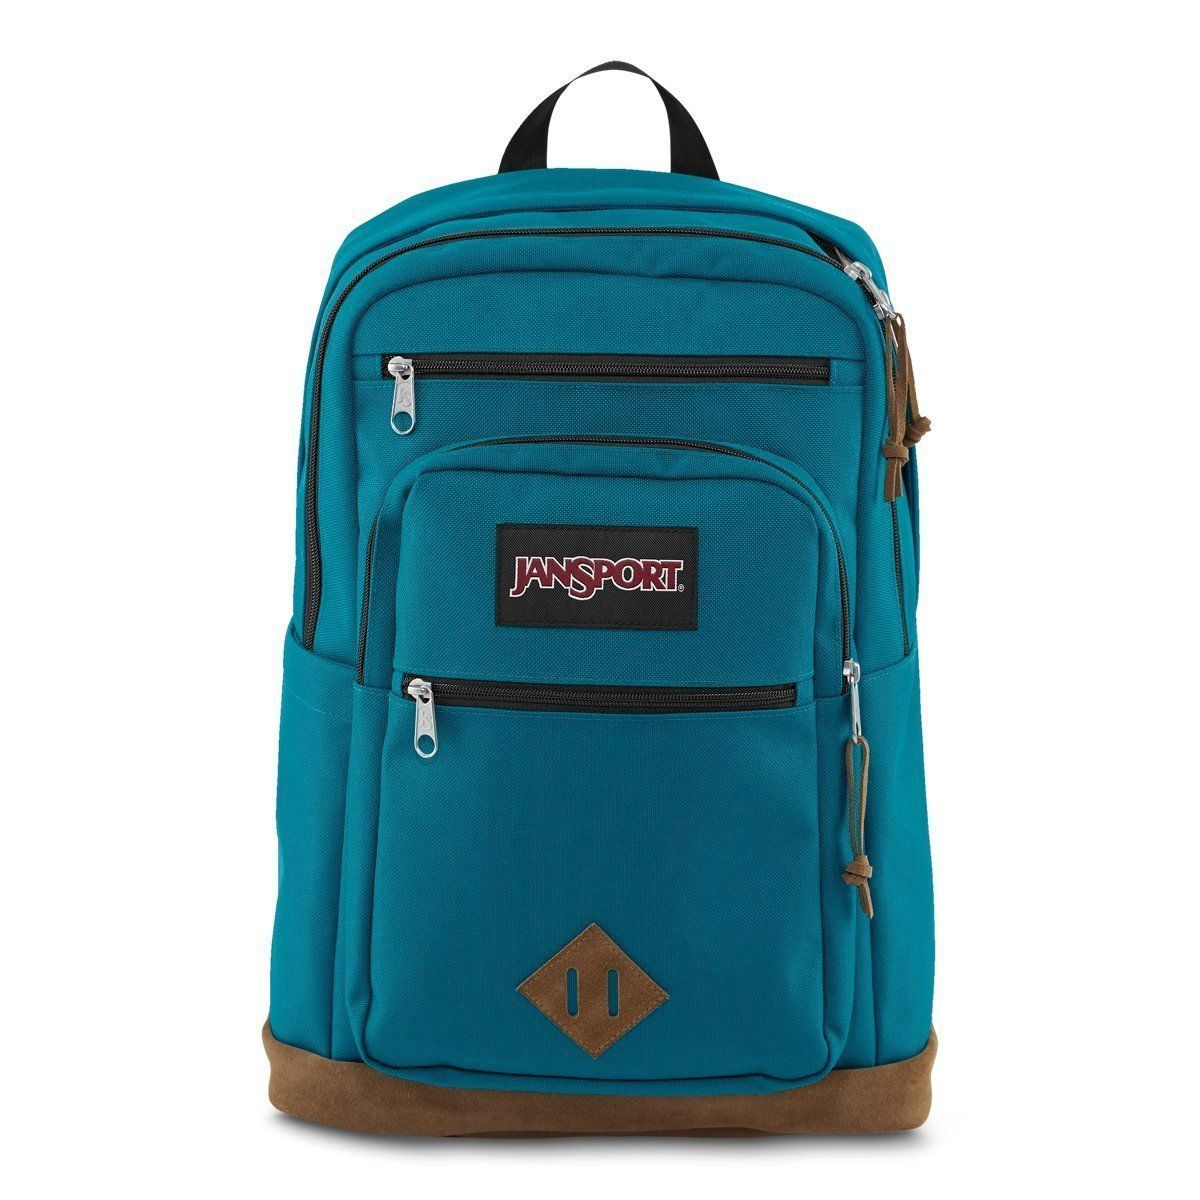 Trans By Jansport Backpacks zJsLA5kK